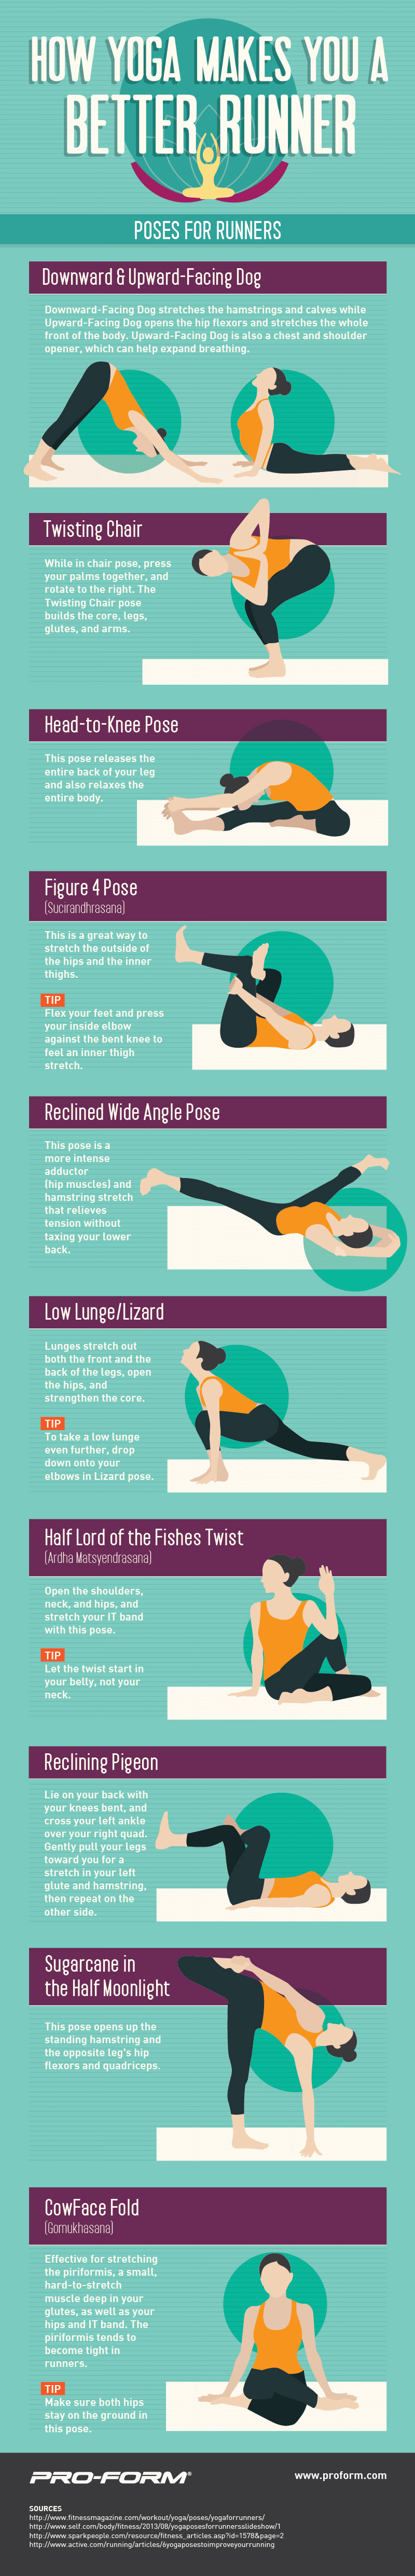 Infographic: How Yoga Makes You a Better Runner: Poses for Runners